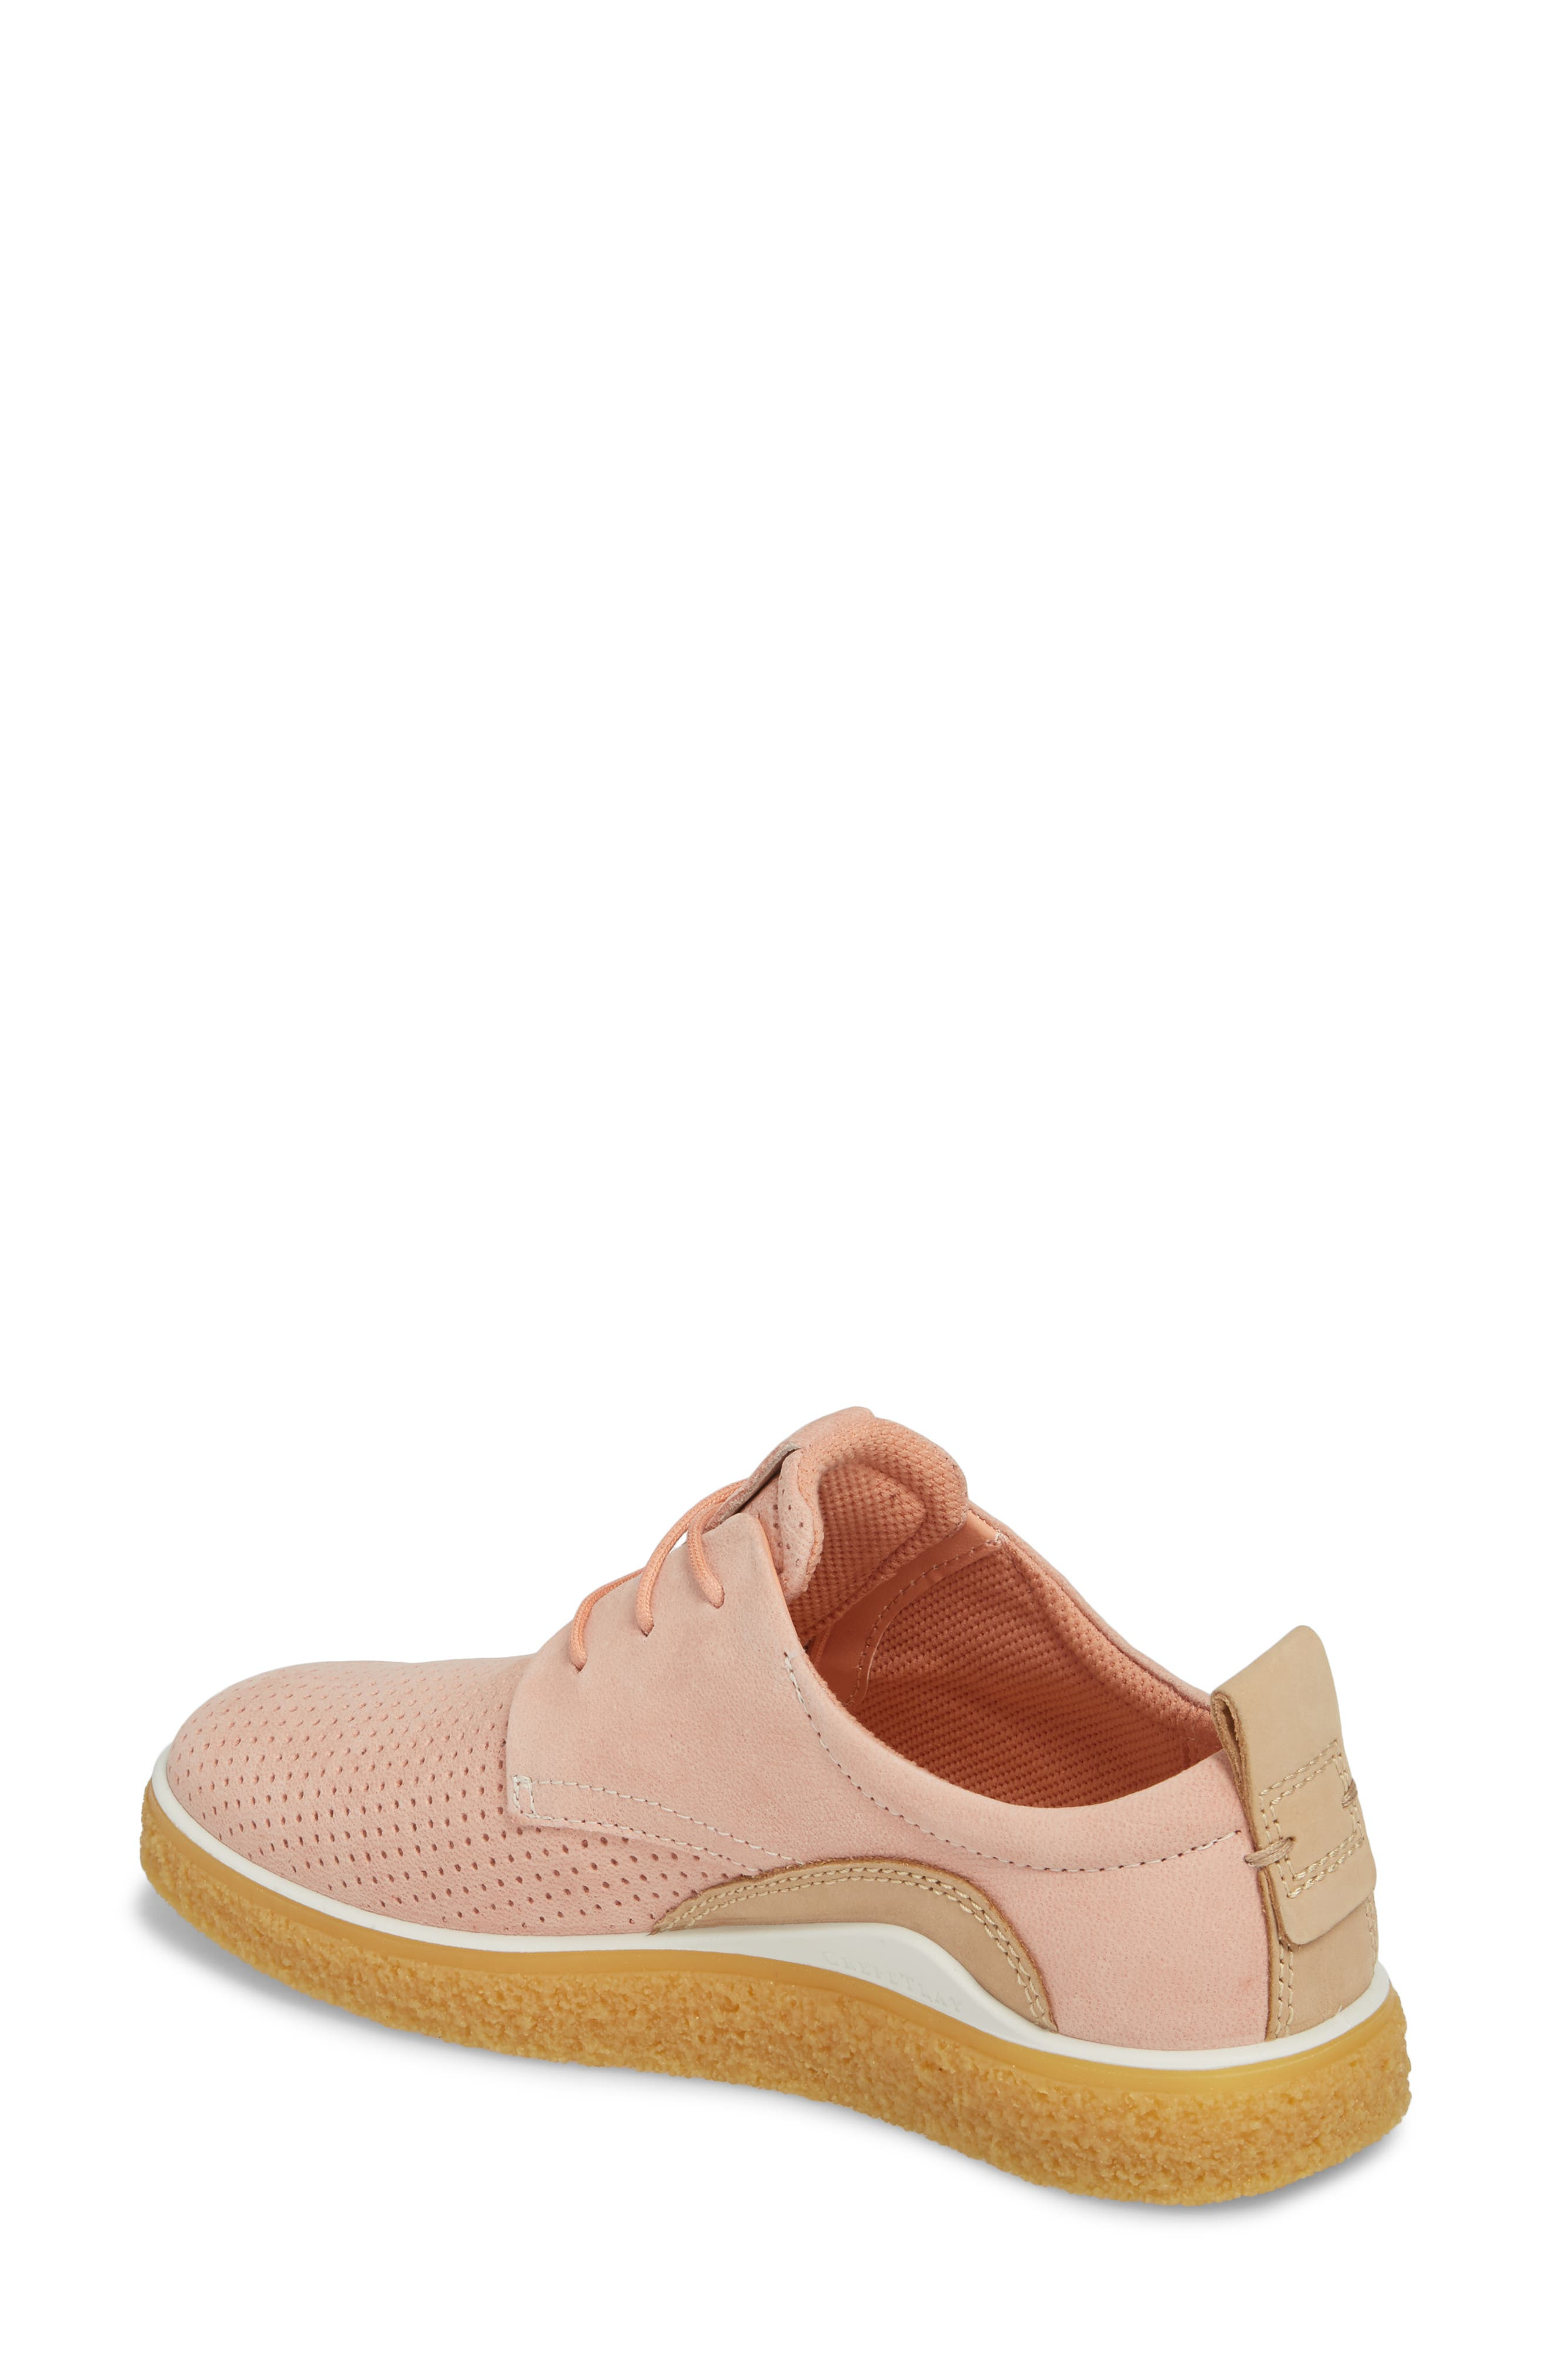 Crepetray Sneaker,                             Alternate thumbnail 2, color,                             Muted Clay Powder Leather